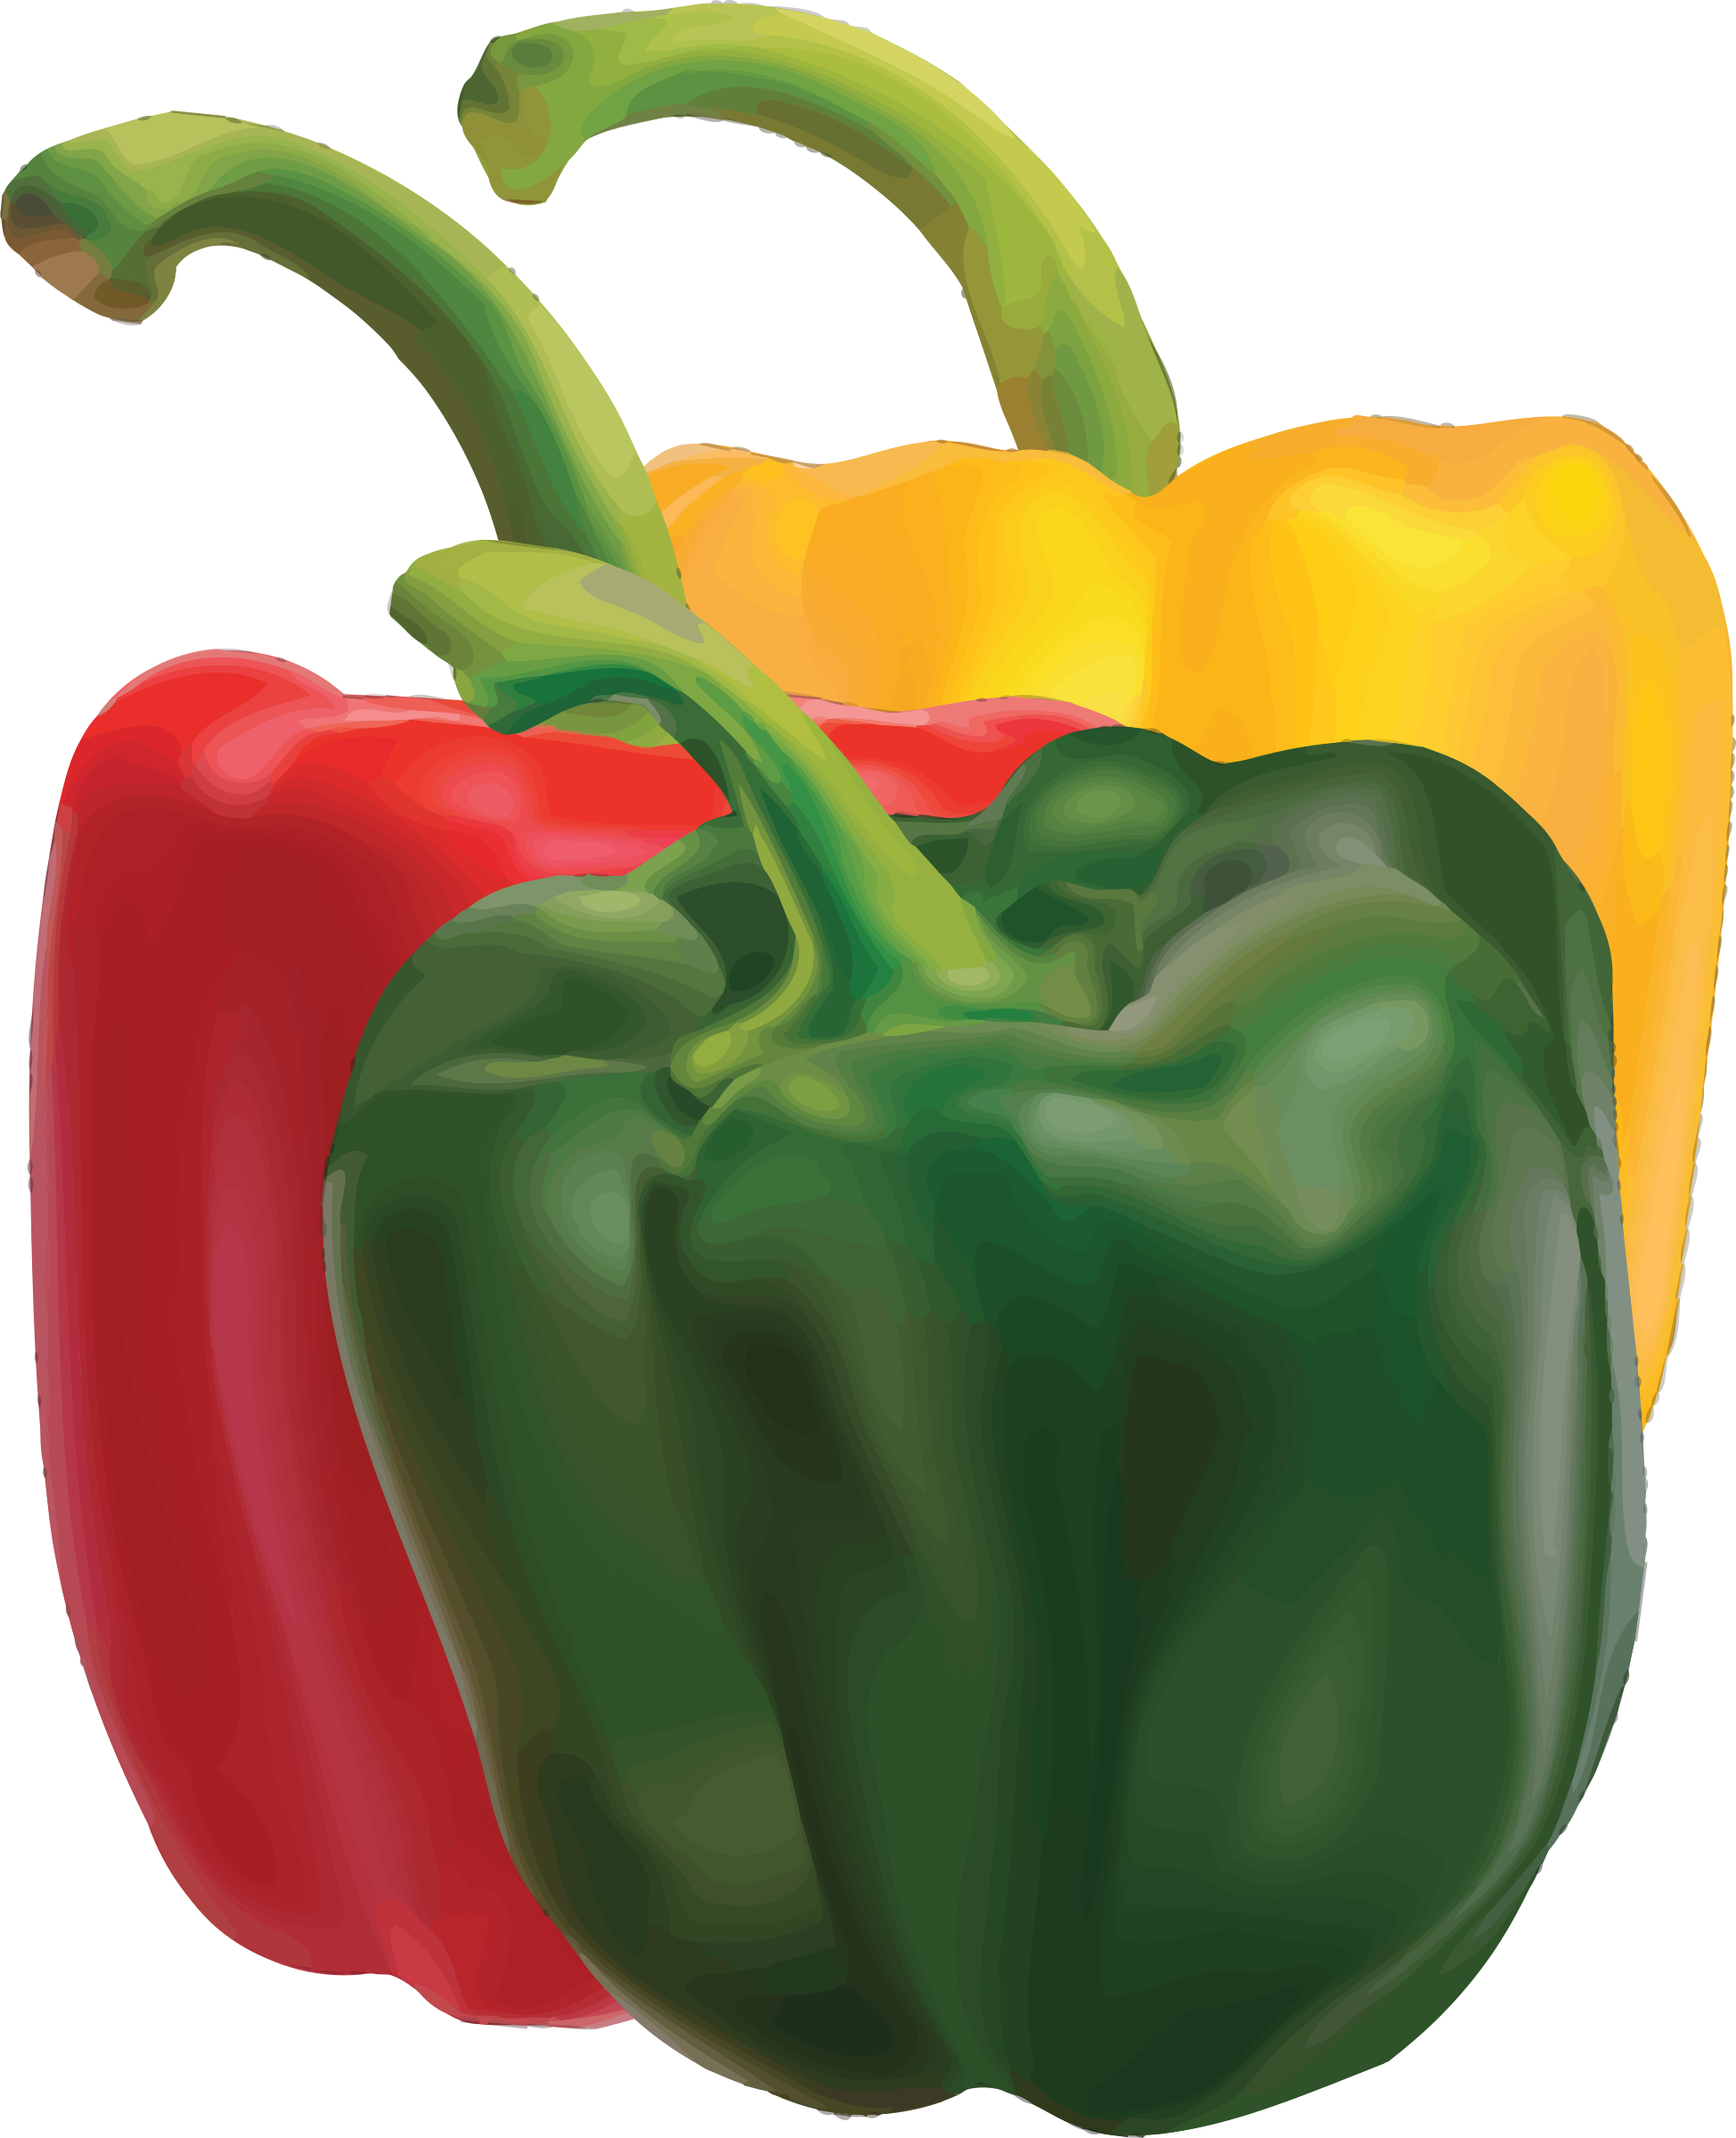 Green cliparts shop of. Pepper clipart sili